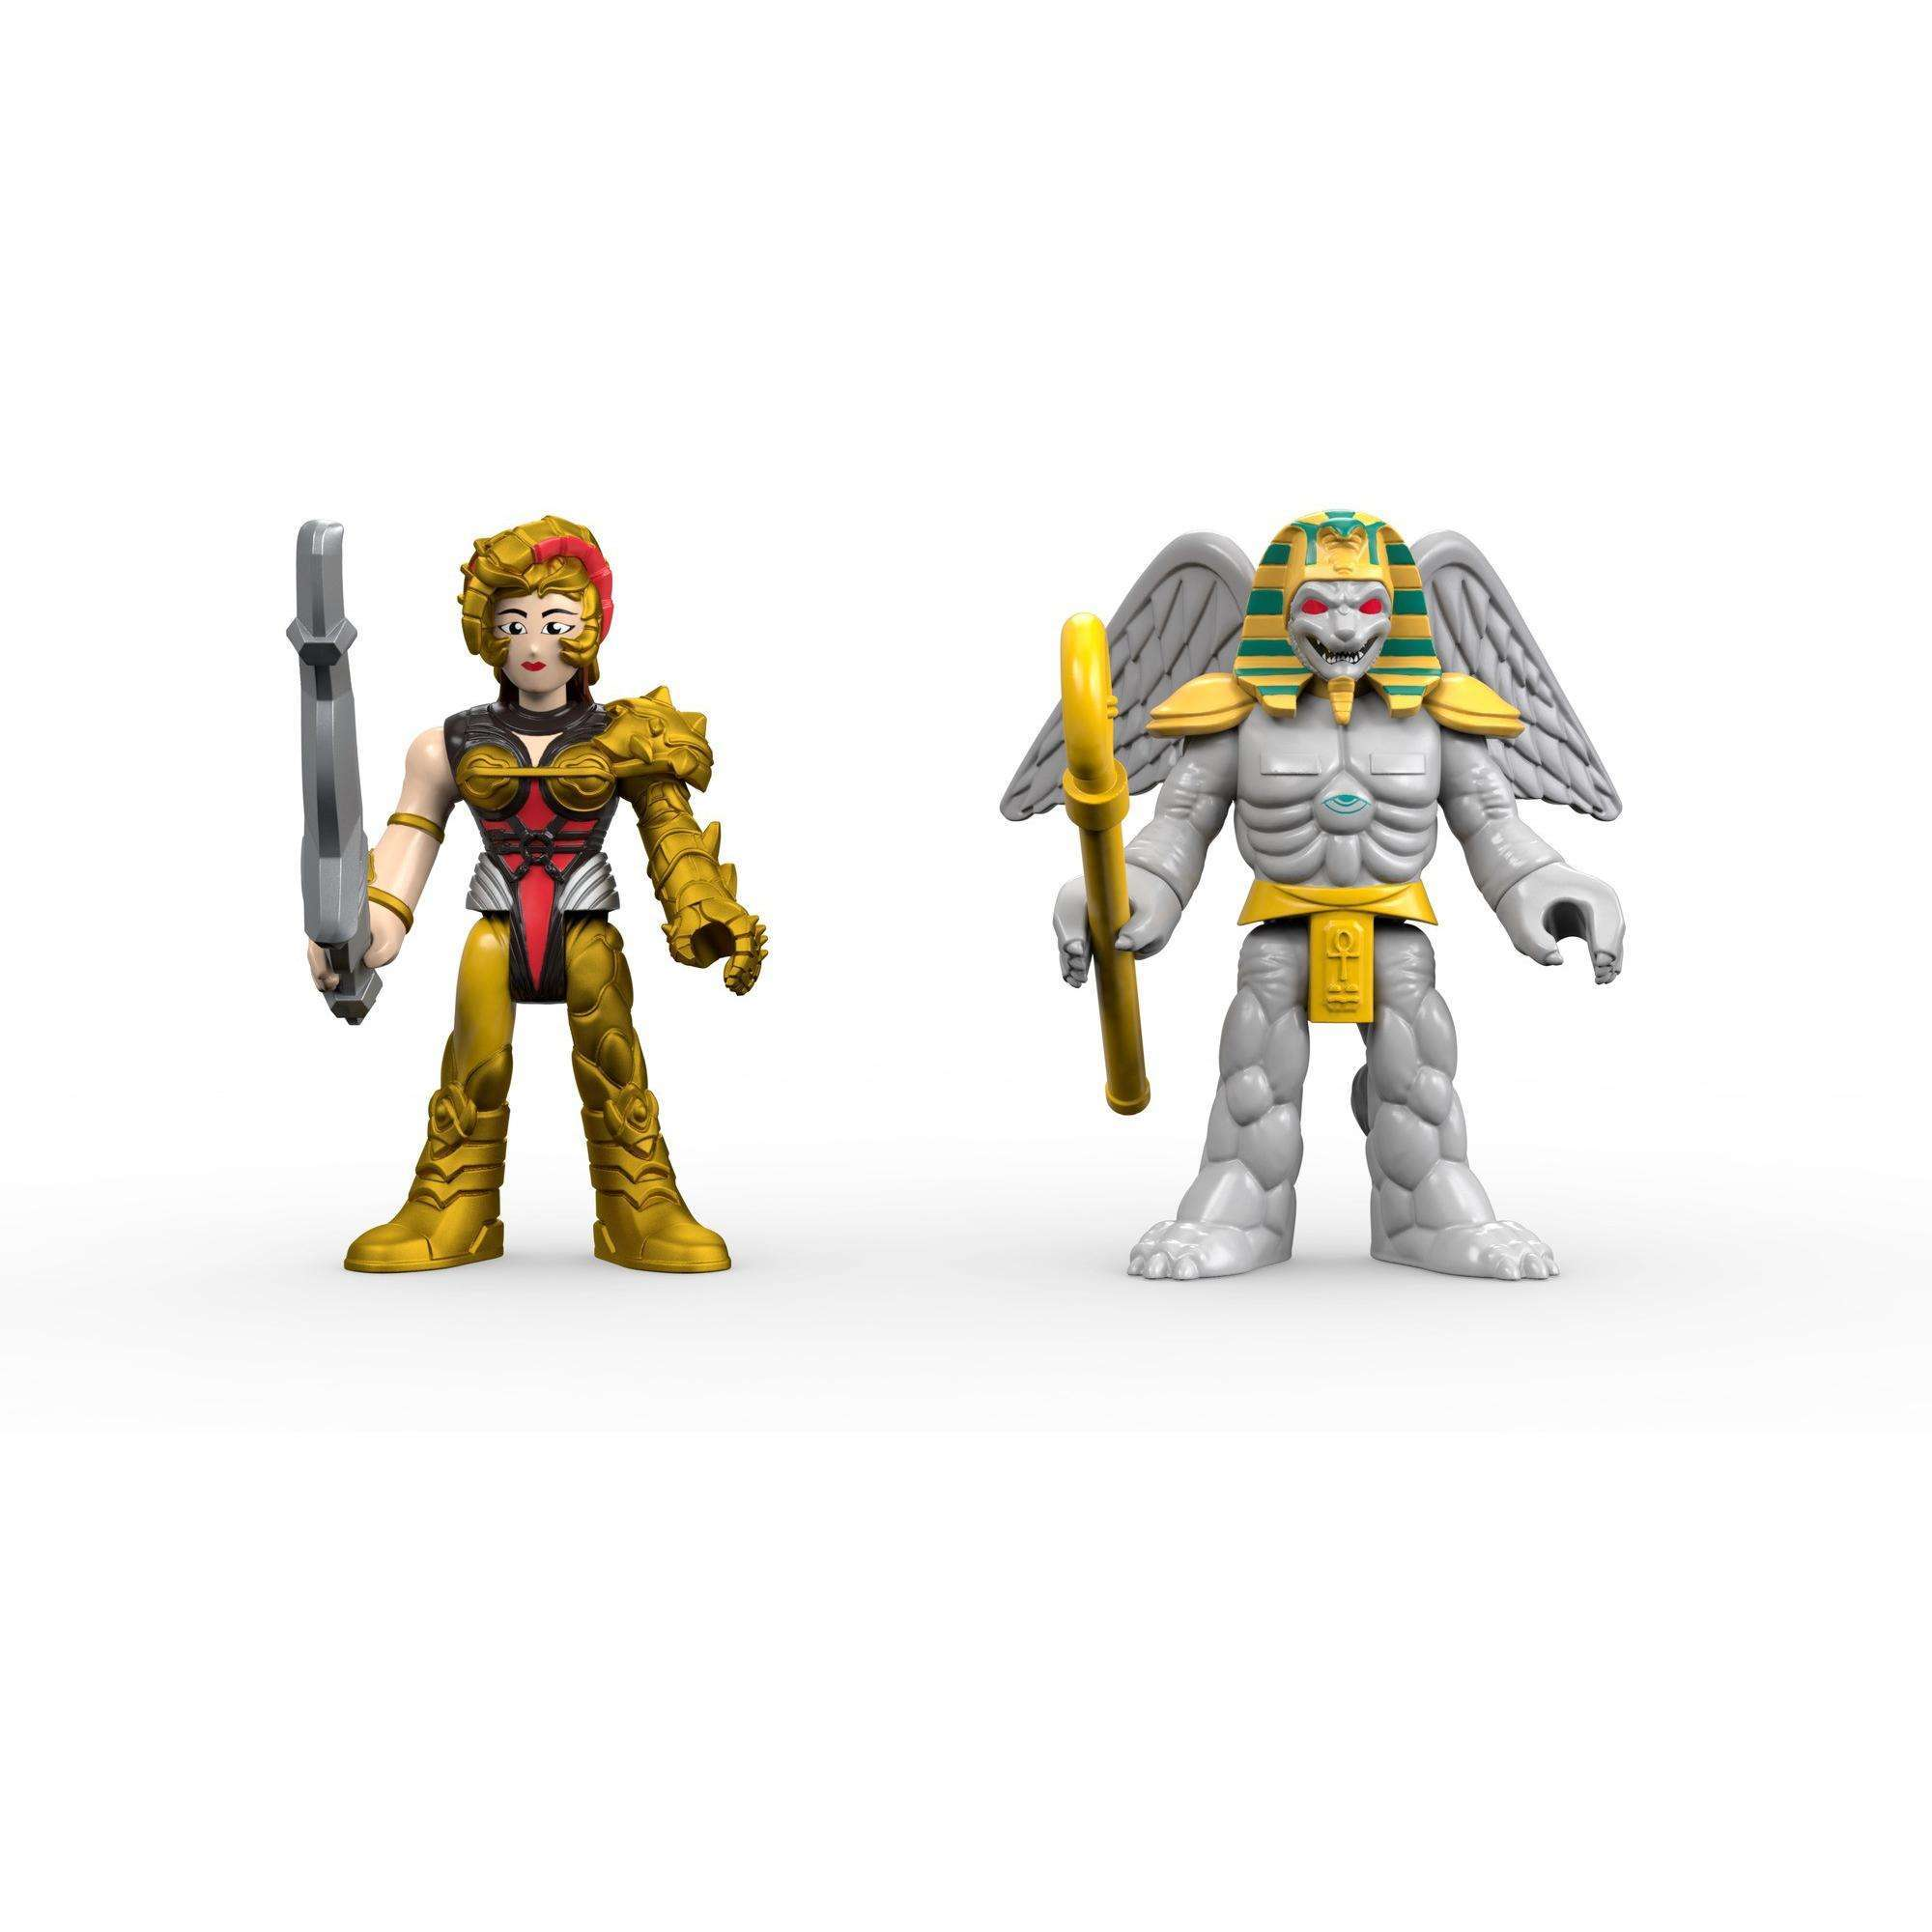 Imaginext Power Rangers King Sphinx & Scorpina